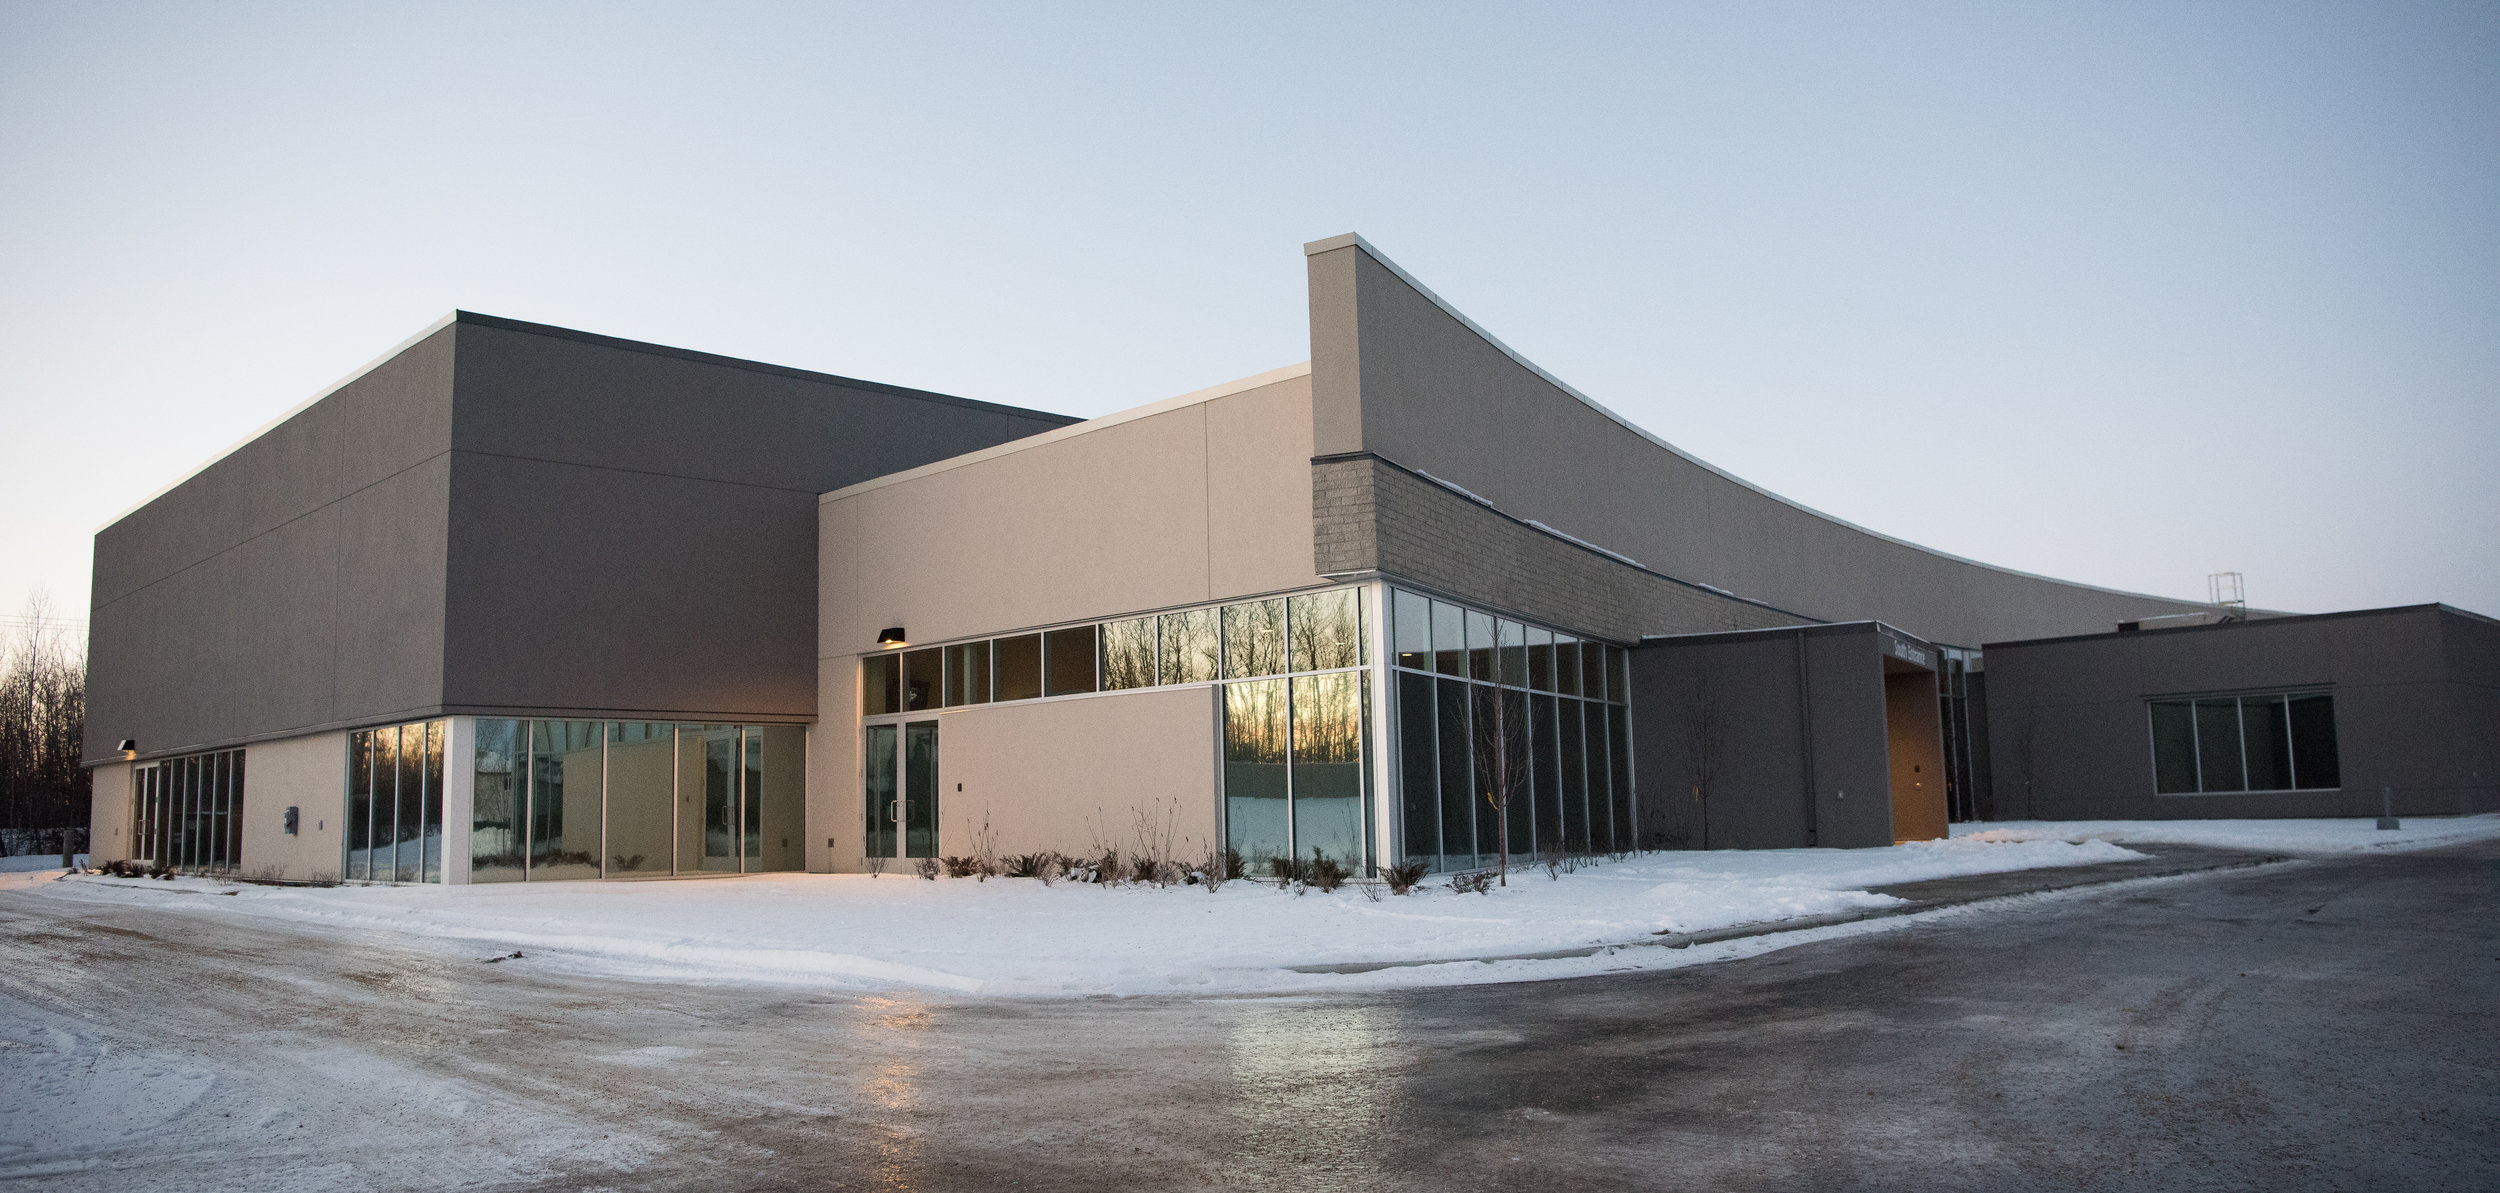 Job Name:  North Point Church   Contractor:  Keller Construction   Description:  Expansion of an existing church on the north side of Edmonton. The new section of the building included a new multi-purpose room as well as new classrooms, and renovations to some of the existing church.